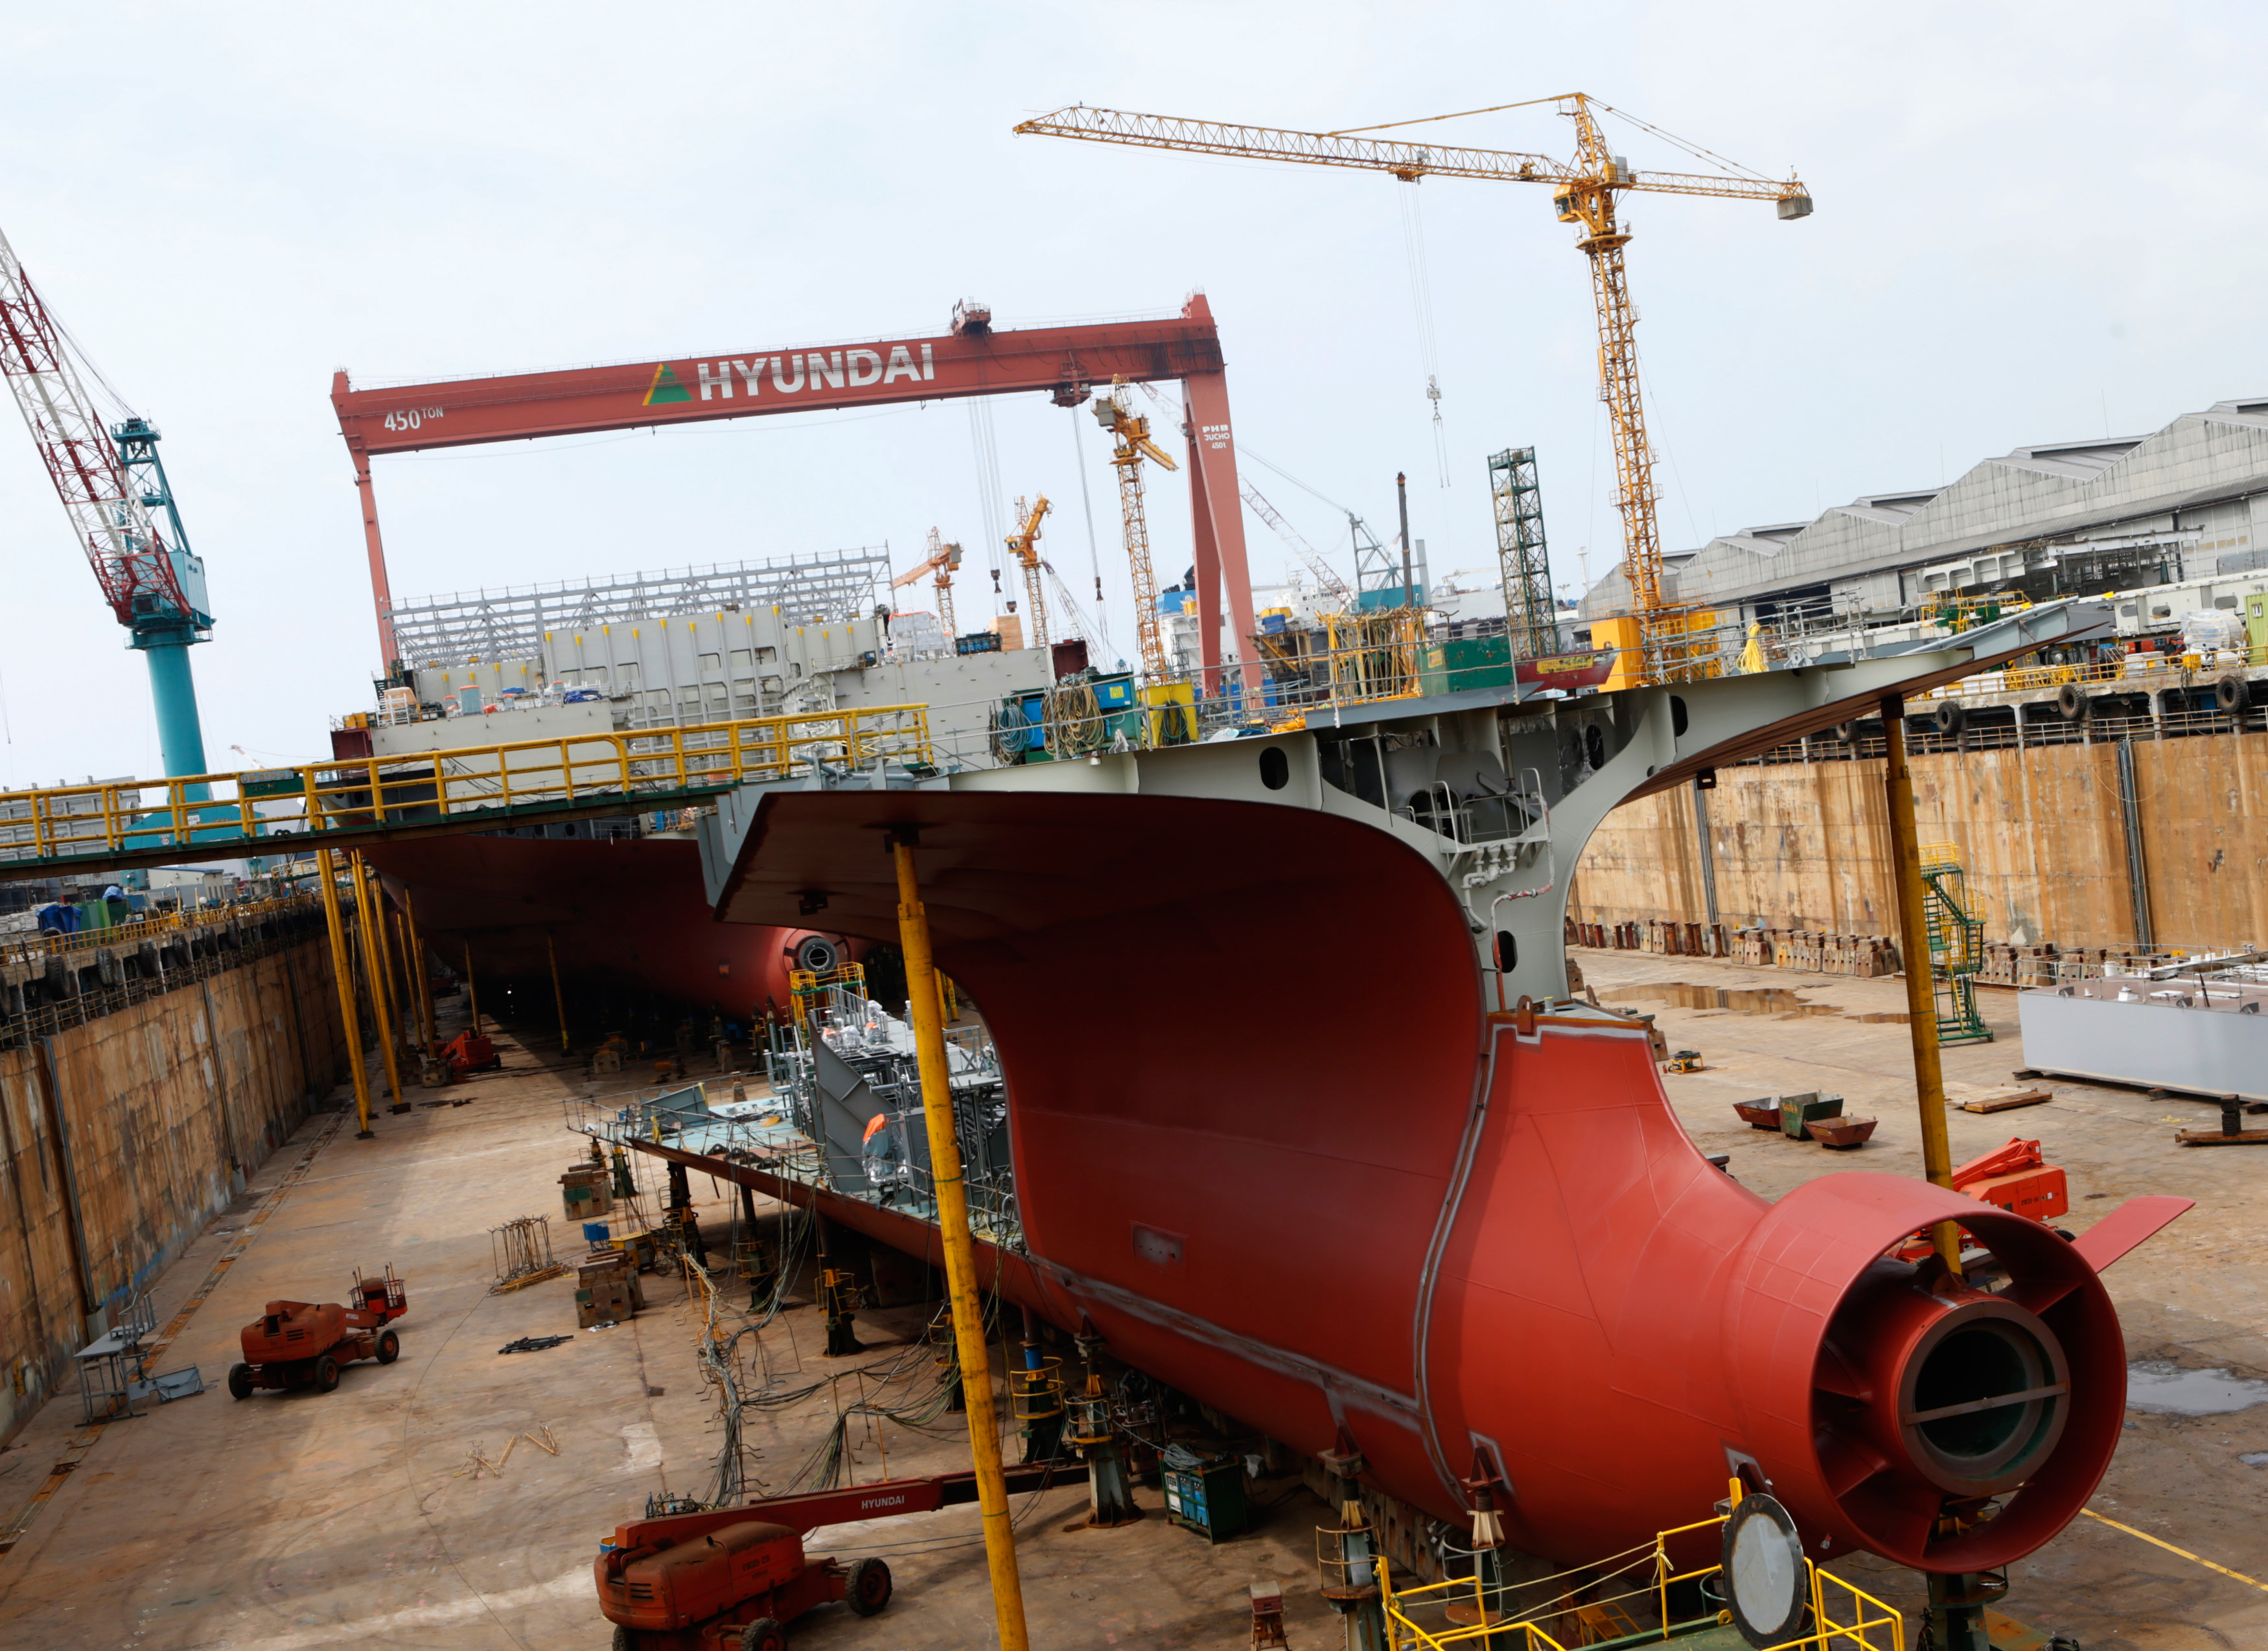 daewoo shipbuilding and machinery